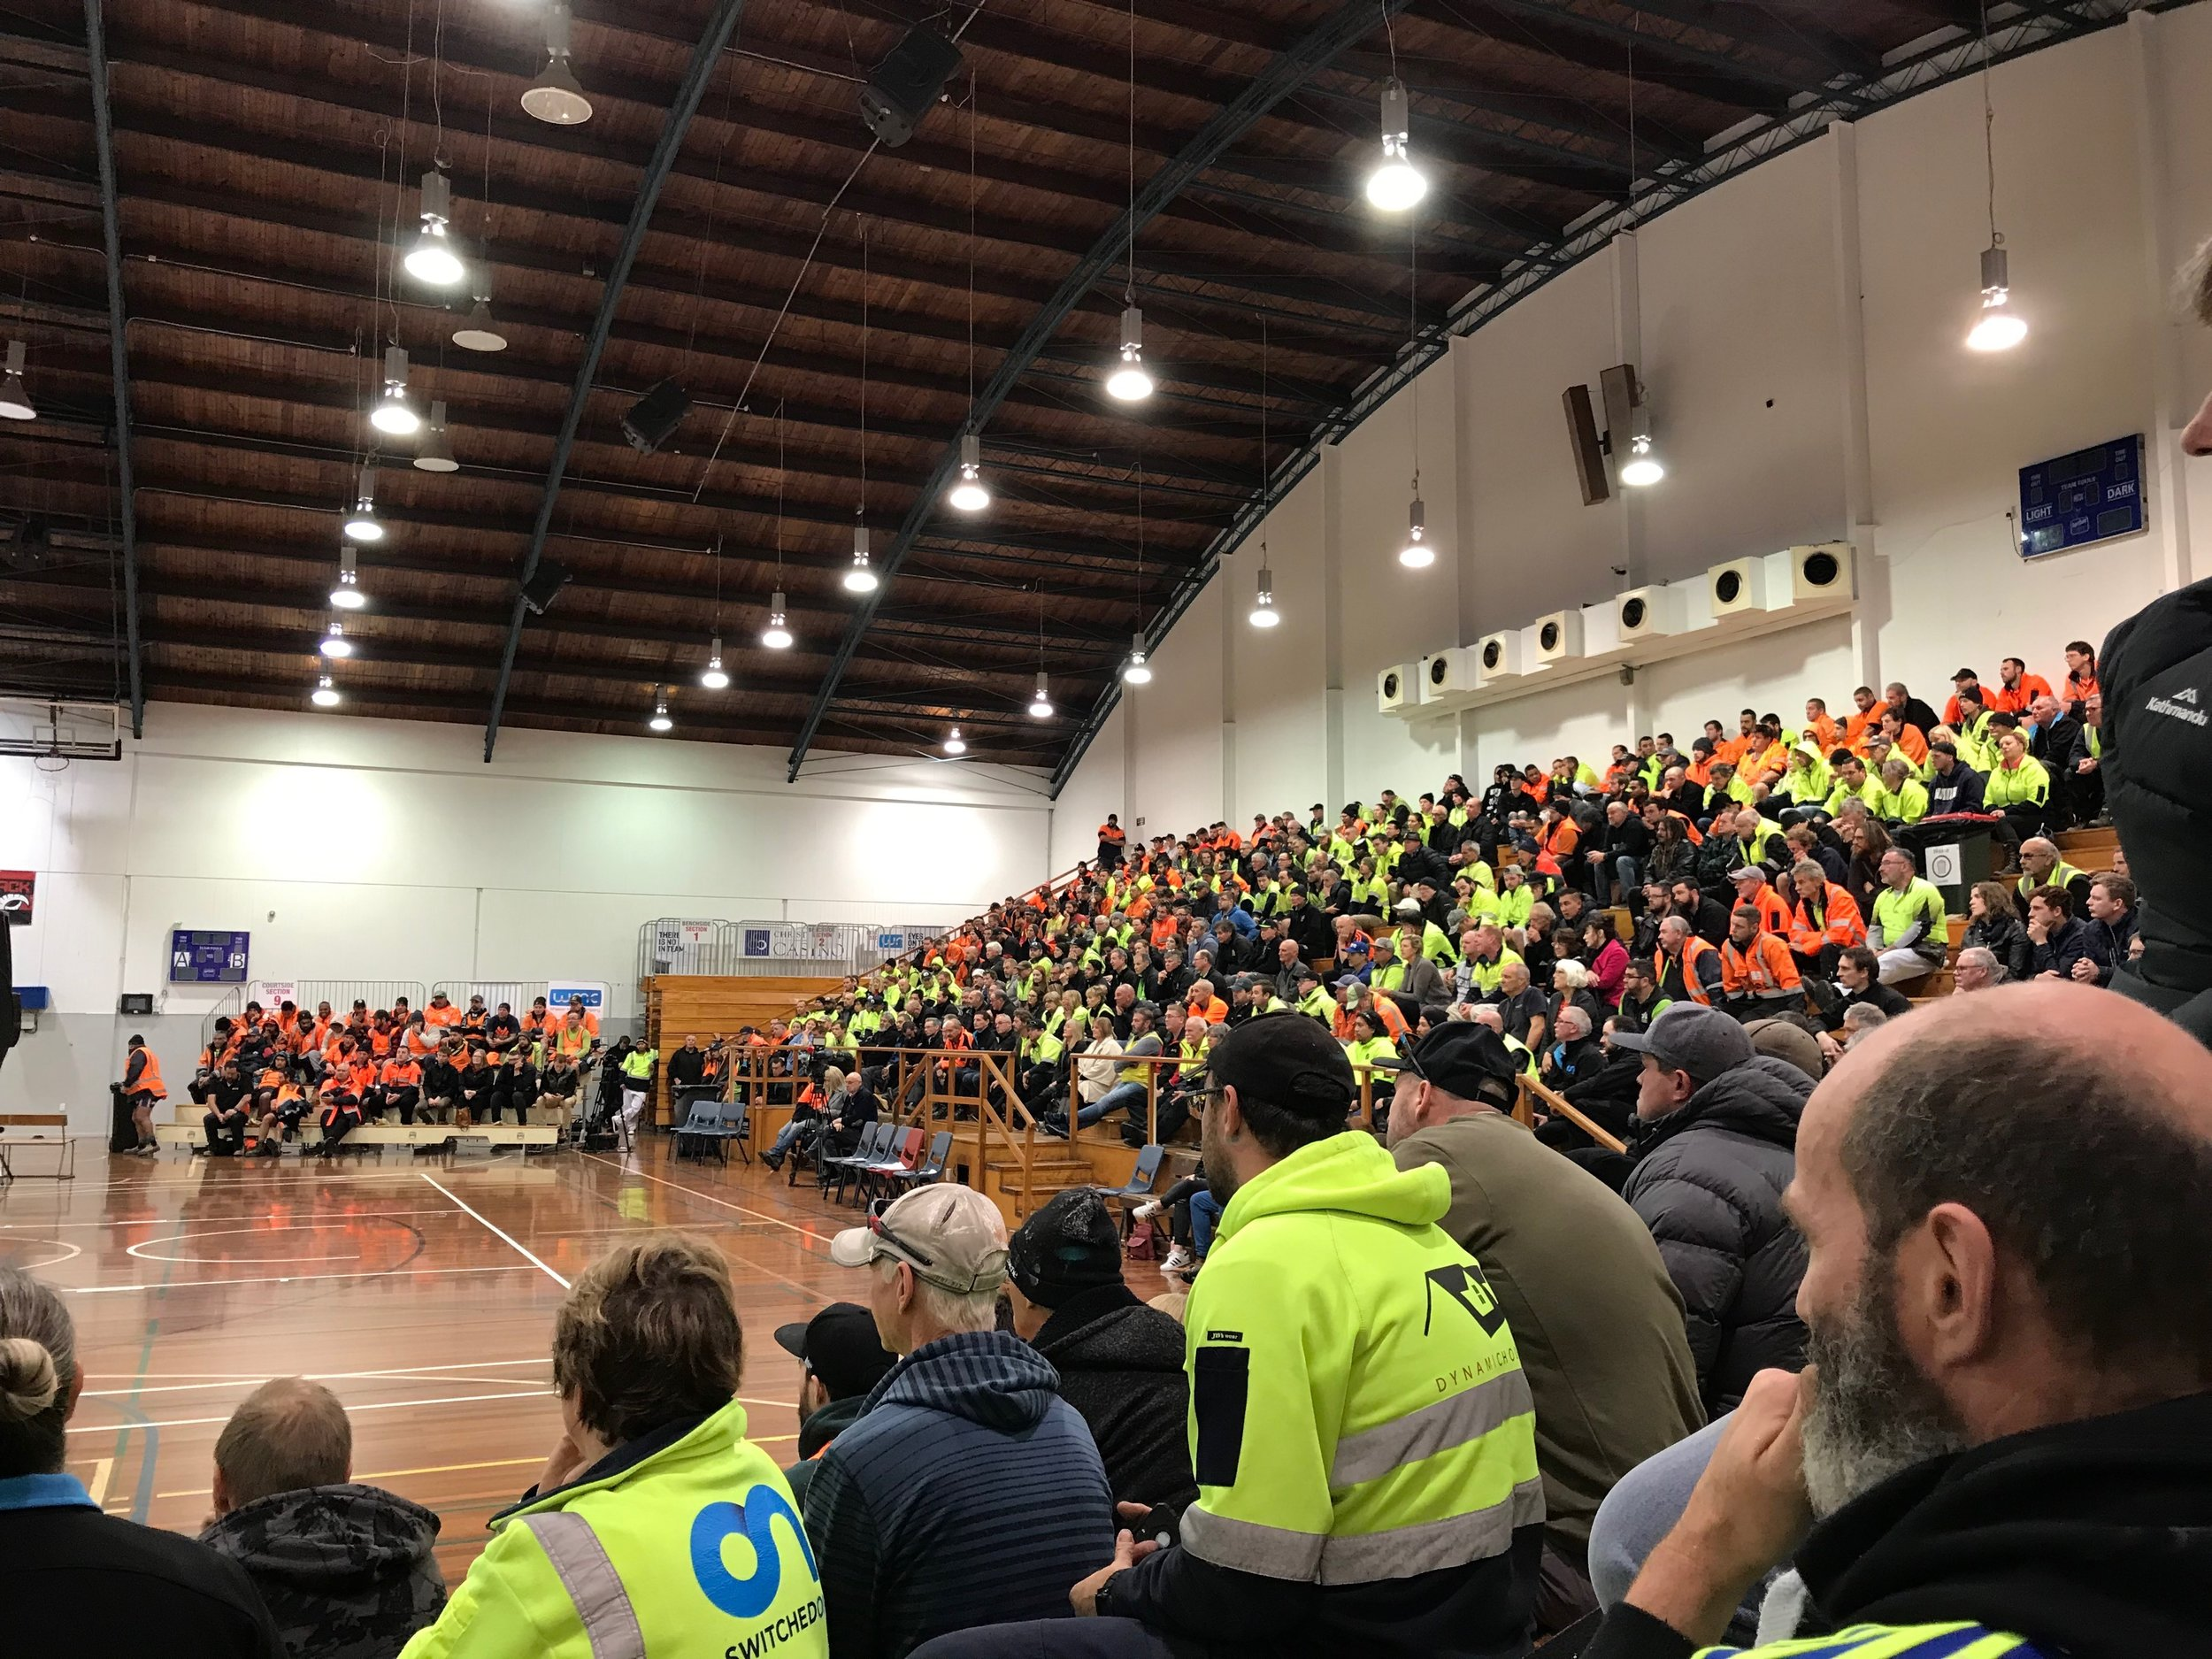 600 tradespeople turned out to hear from mental health advocate Mike King at Switched On Group's industry education event.